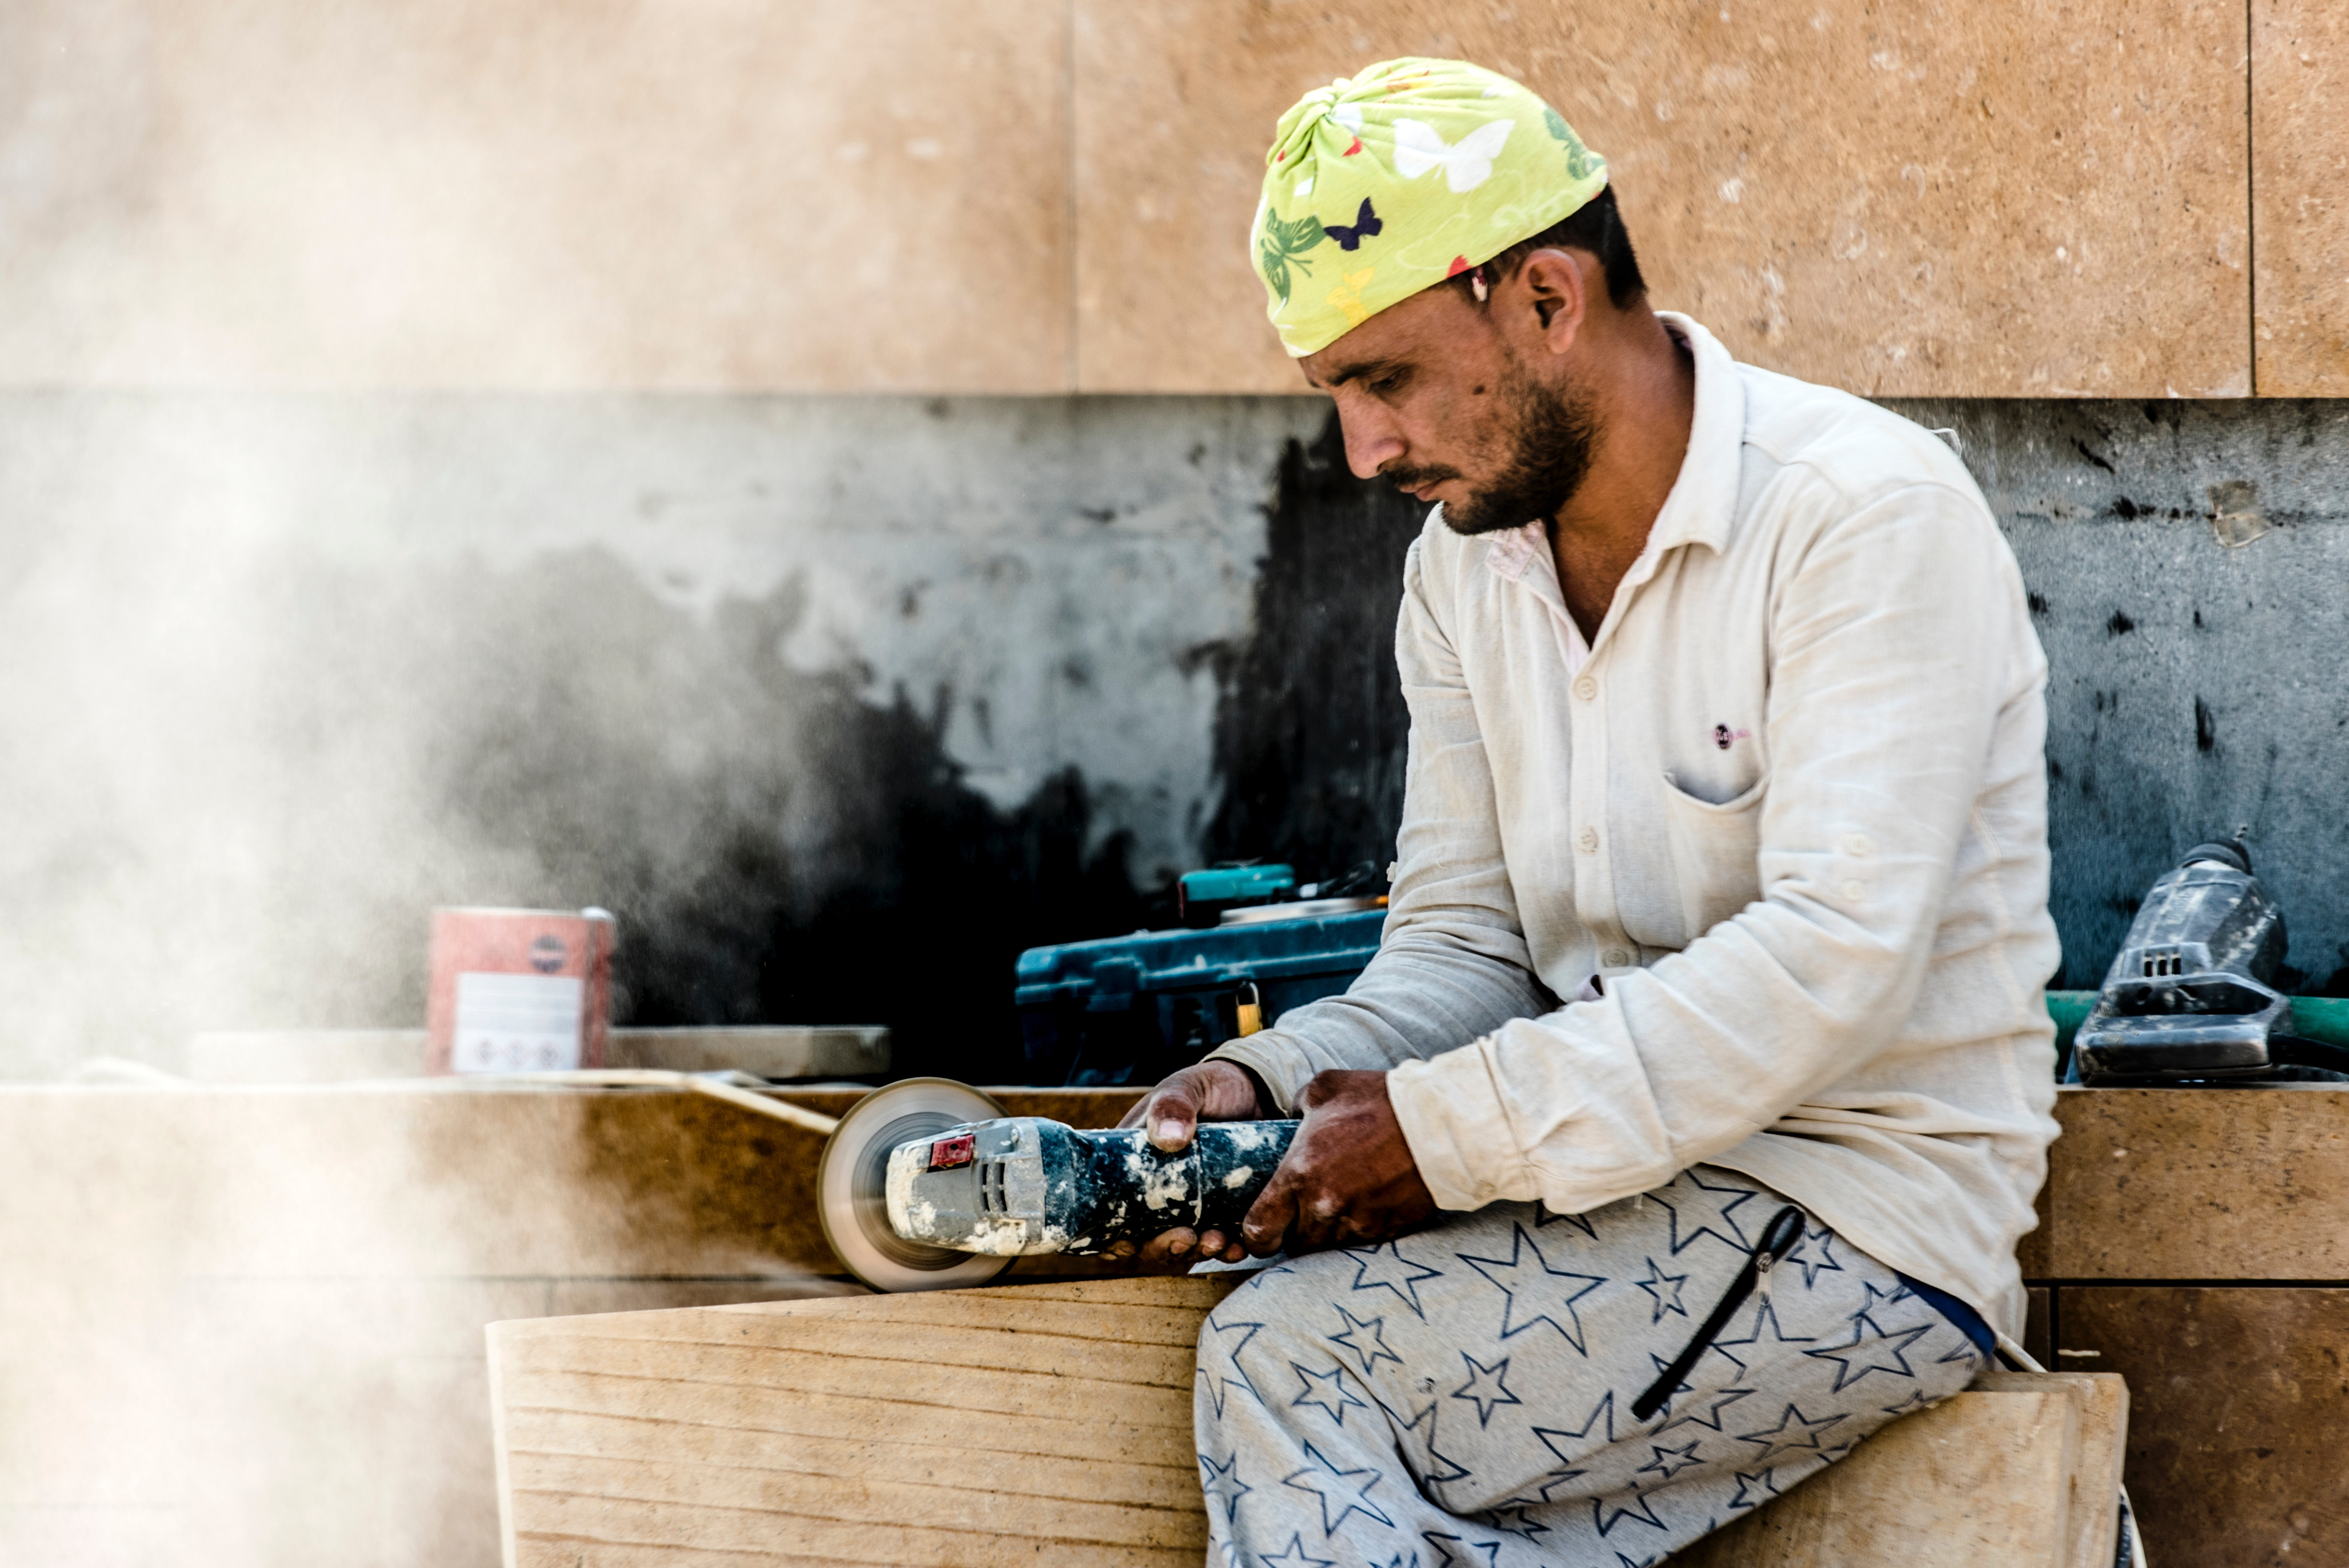 Man Using Angle Grinder, Adult, Artisan, Equipment, Expression, HQ Photo